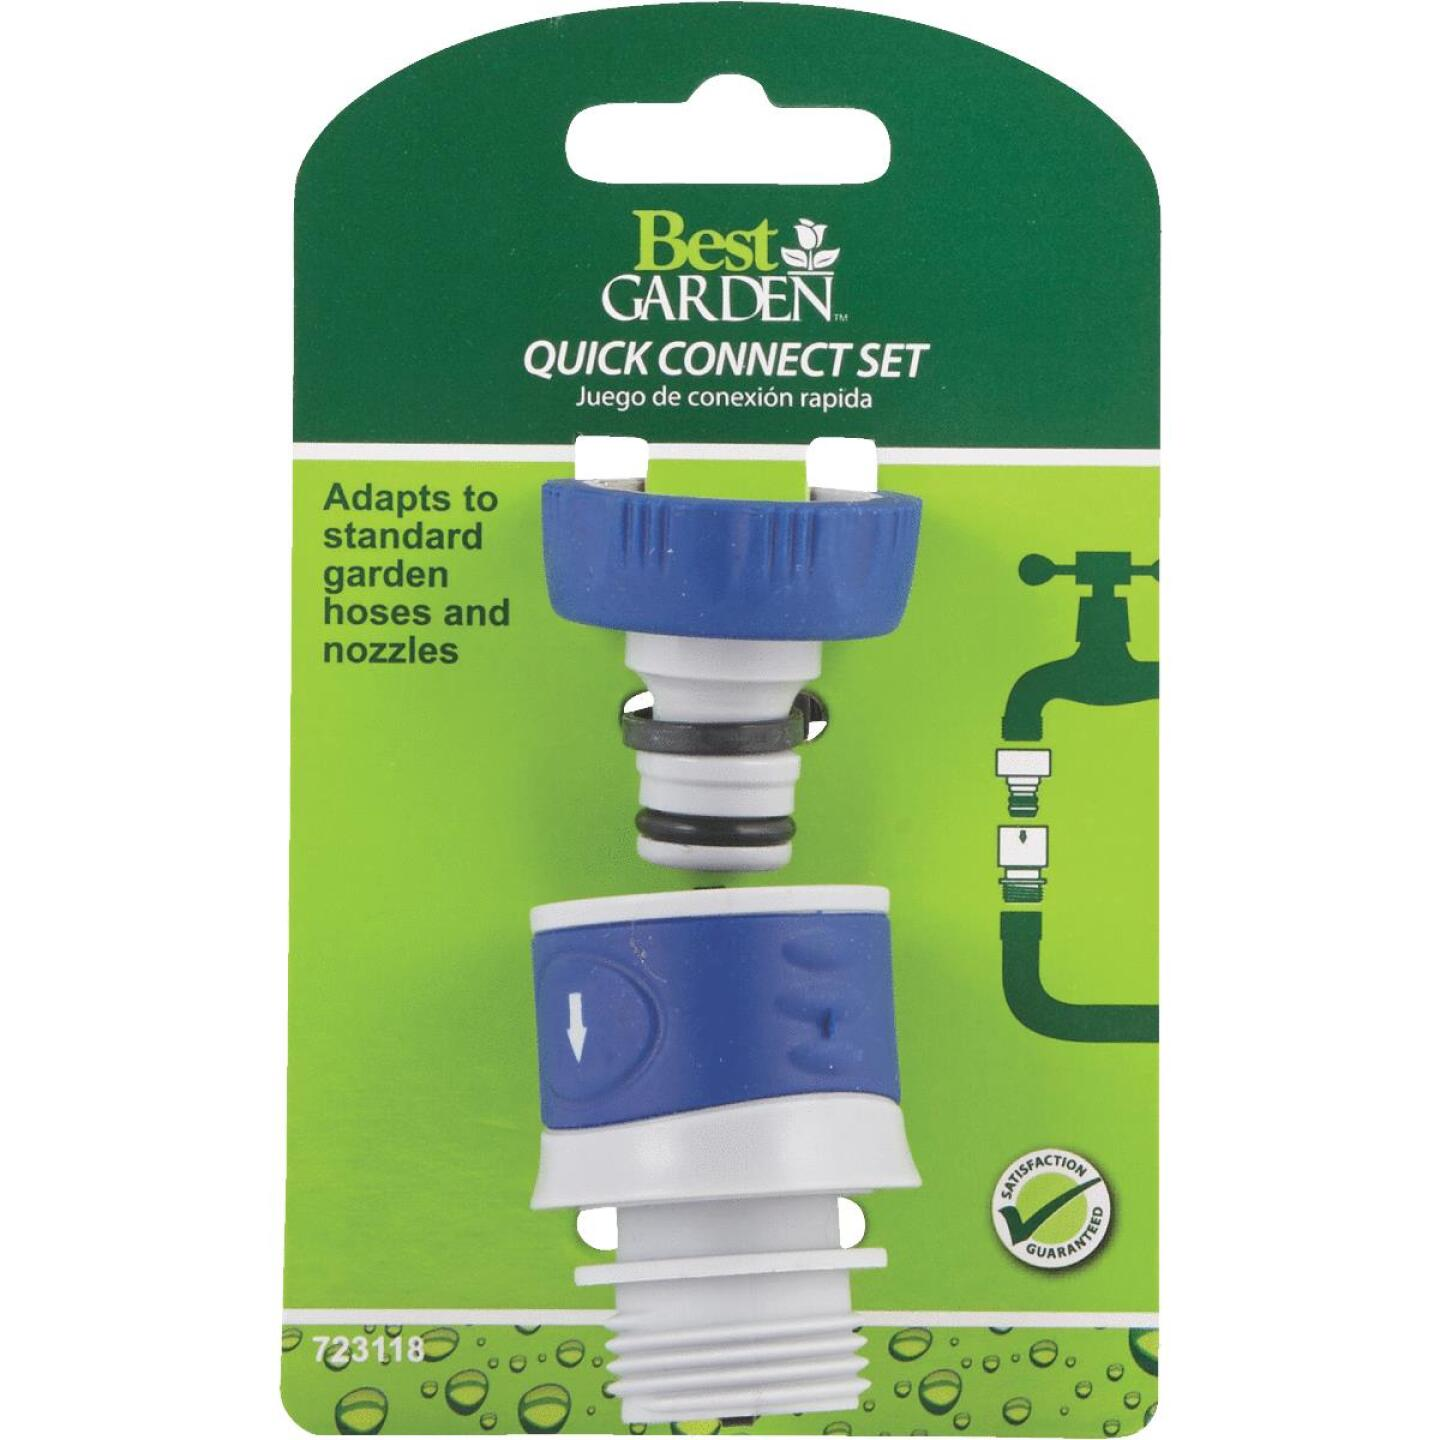 Best Garden 1 Male, 1 Female Poly Faucet Quick Connect Connector Set Image 3